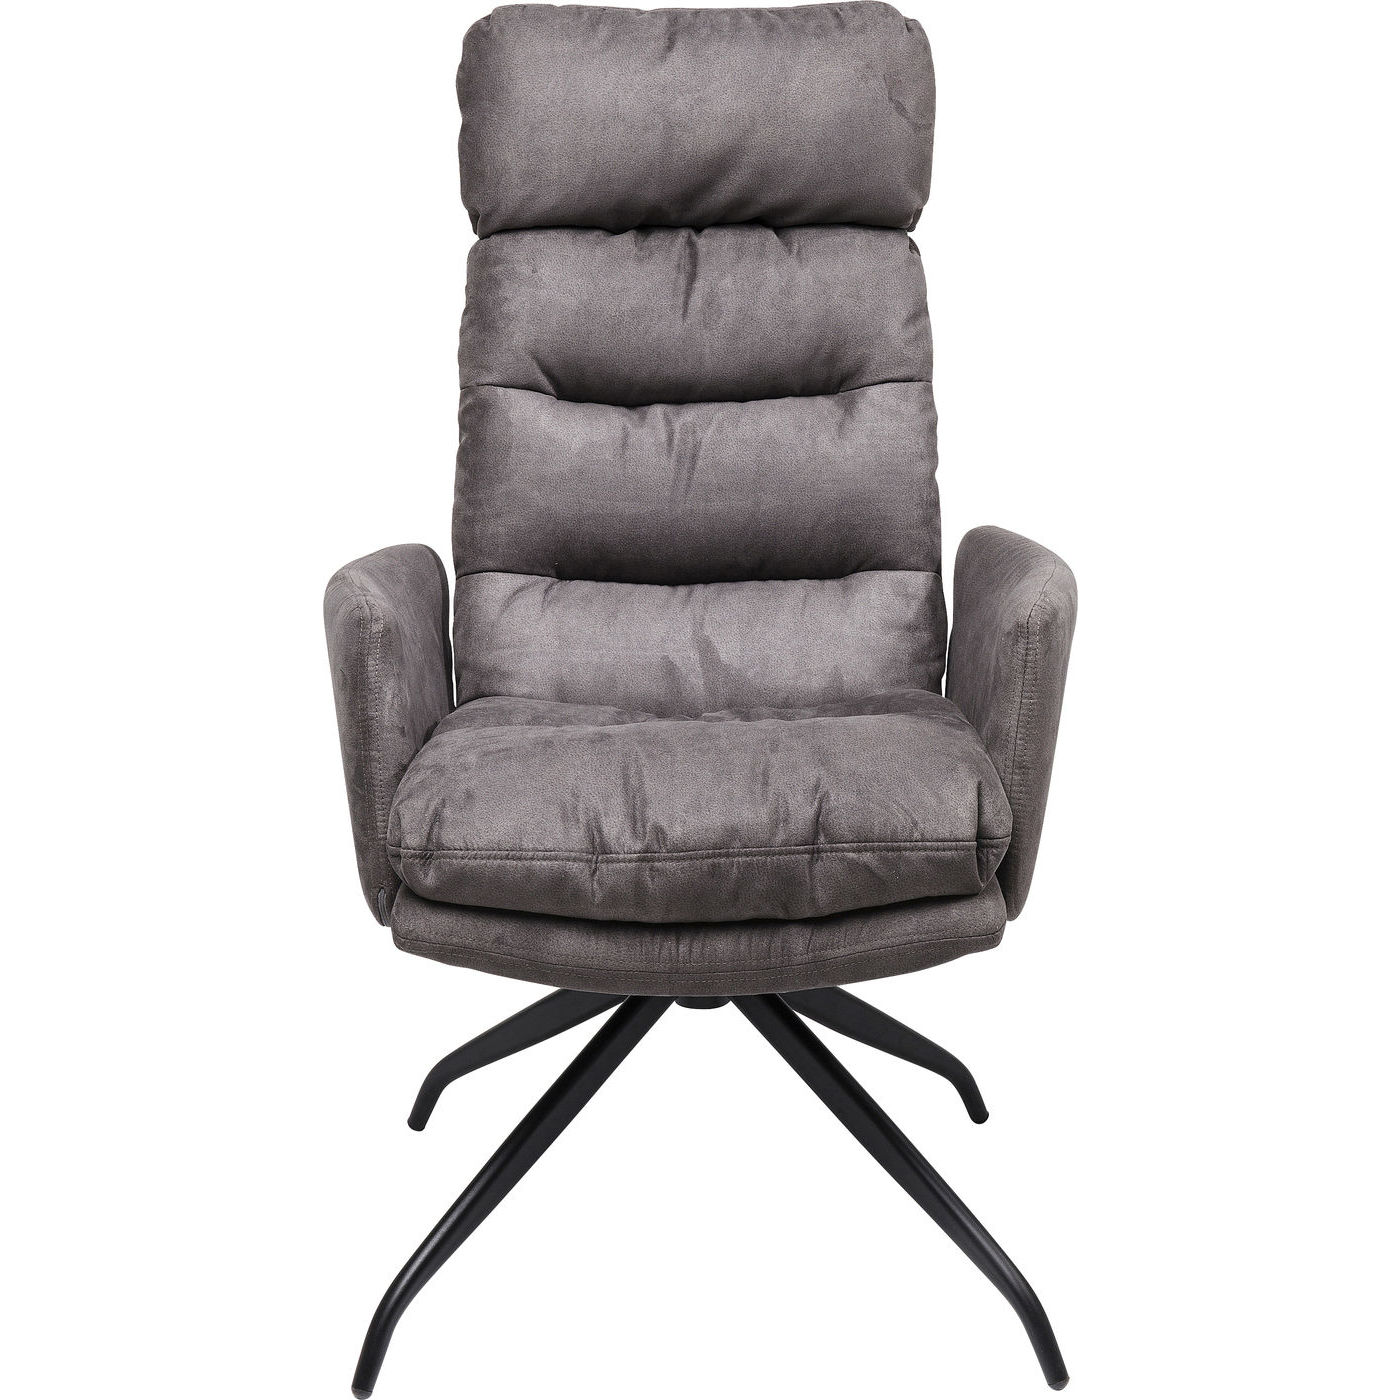 Image of   KARE DESIGN Swivel Chair Dance lænestol - stof og sort stål, m. armlæn